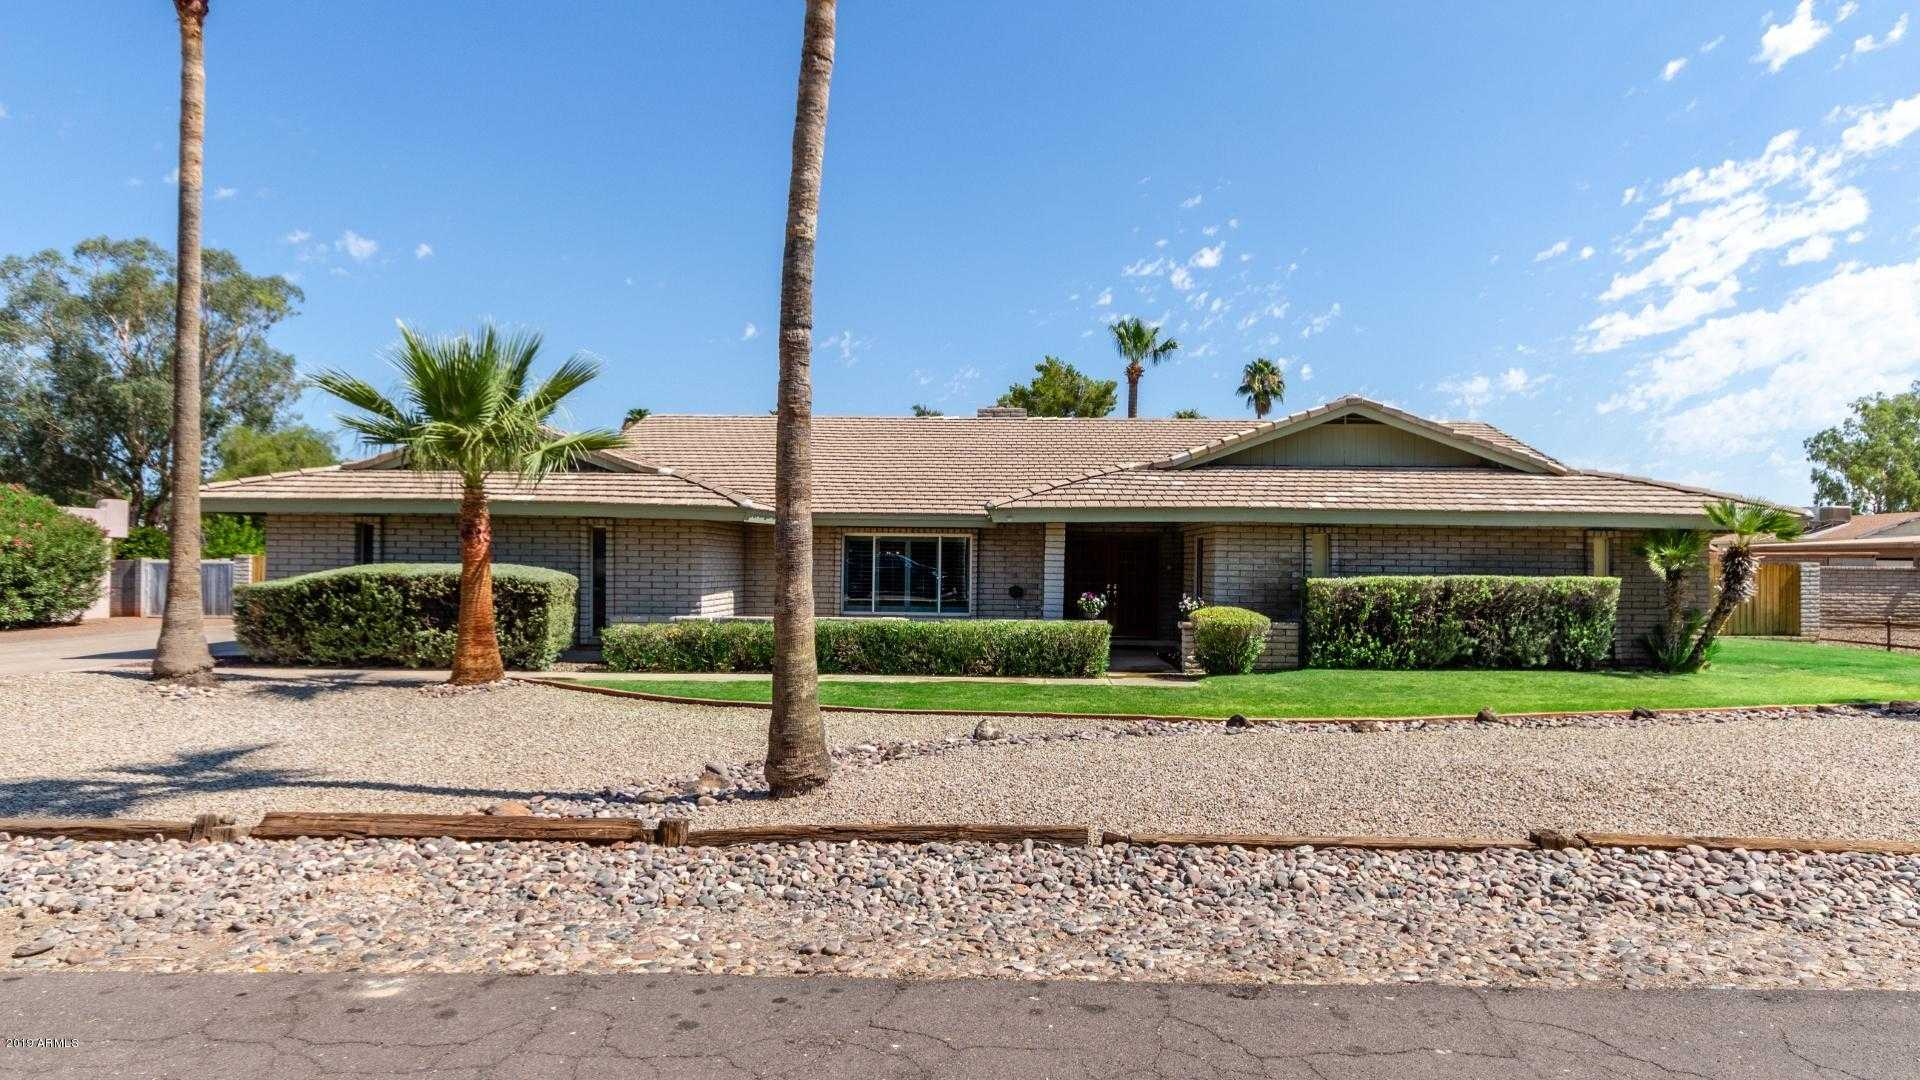 $569,900 - 4Br/3Ba - Home for Sale in Secluded Estates 2, Glendale